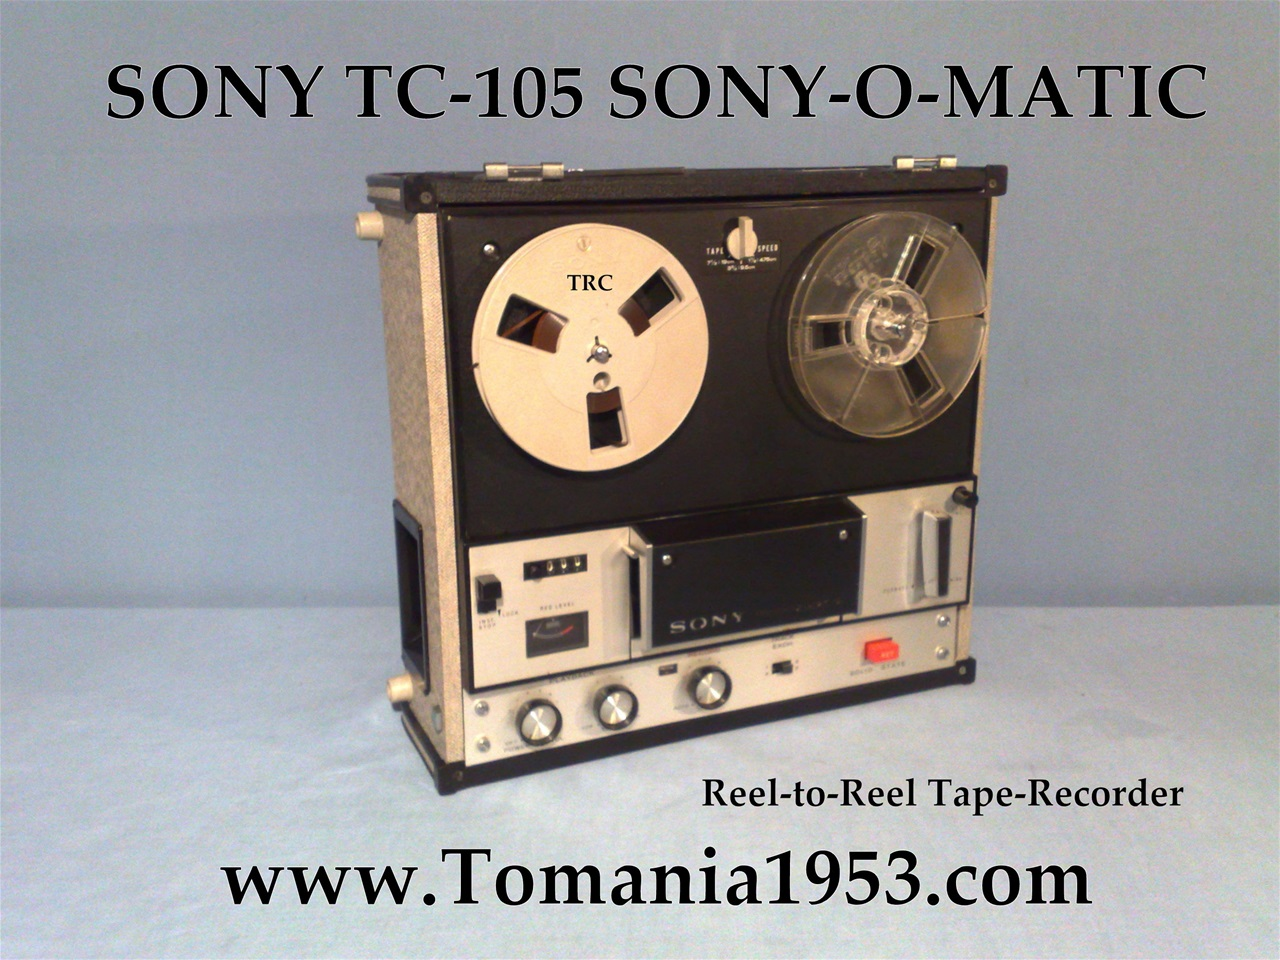 Made In Japan Www Tomania1953 Com